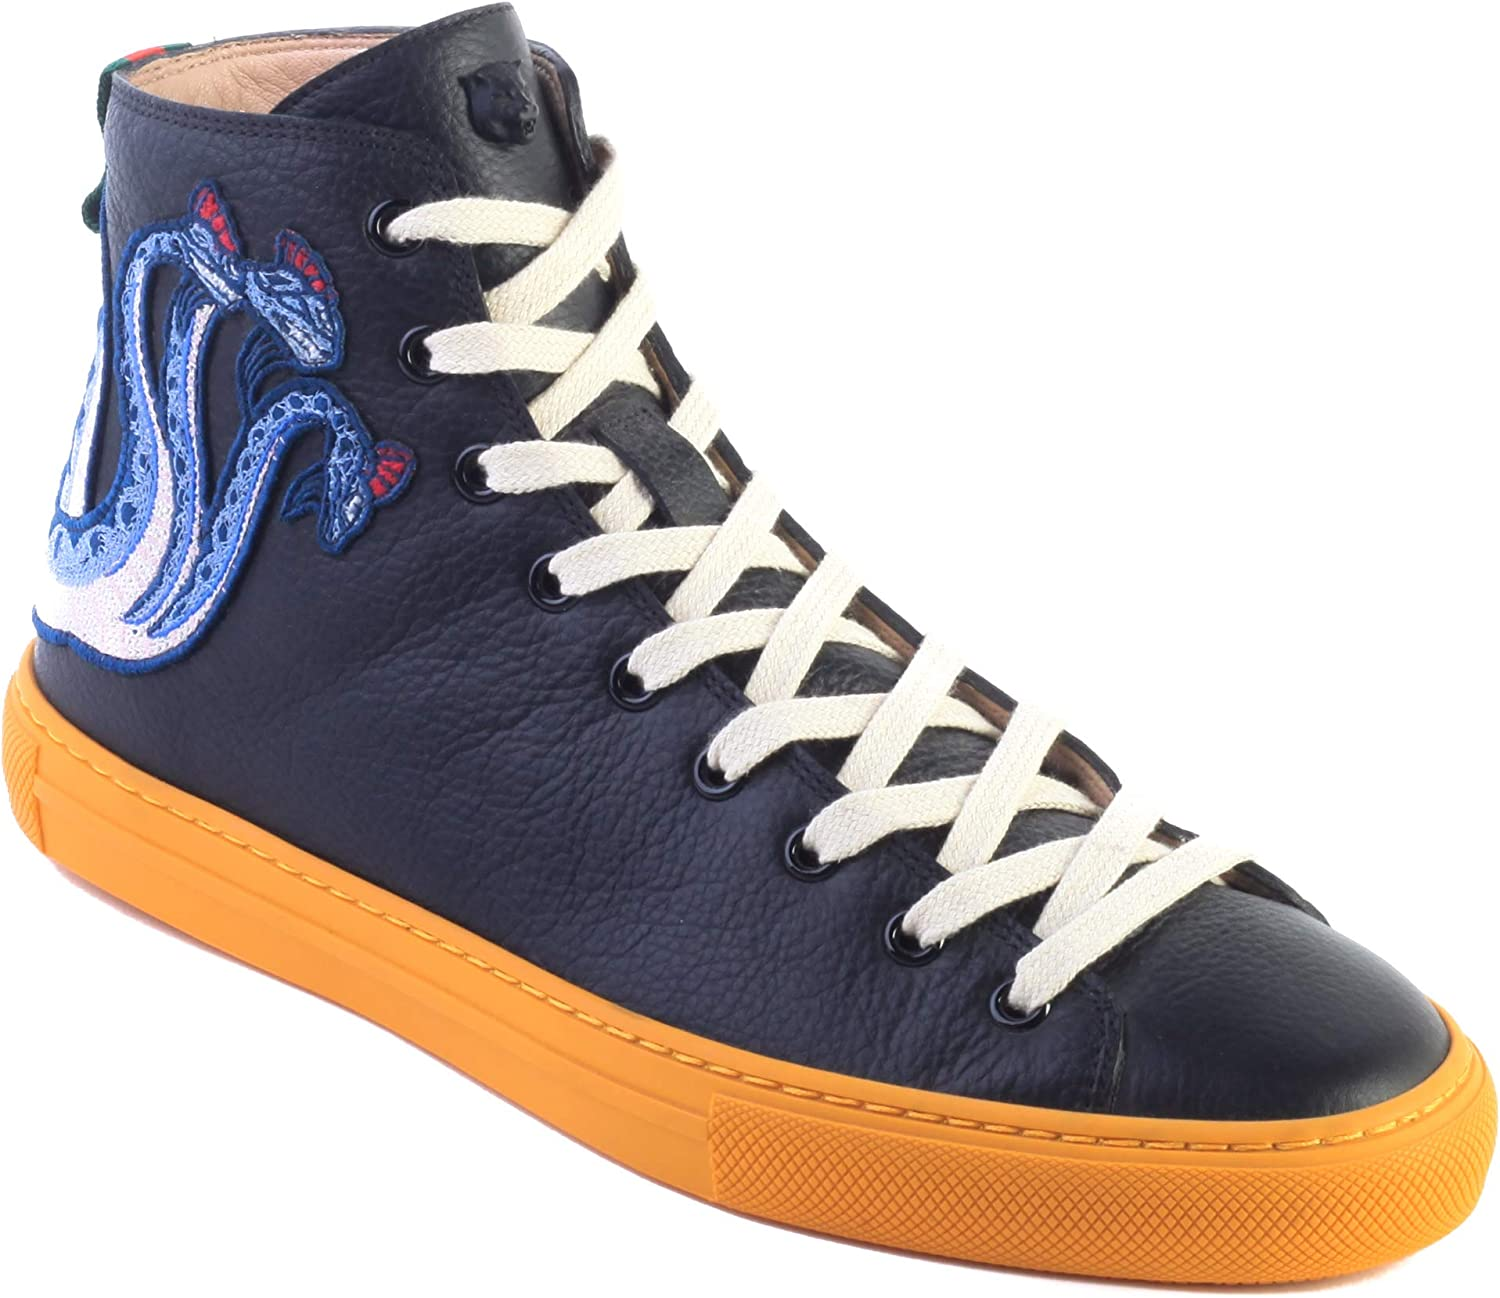 Embroidered Dragon Sneaker Black Shoes